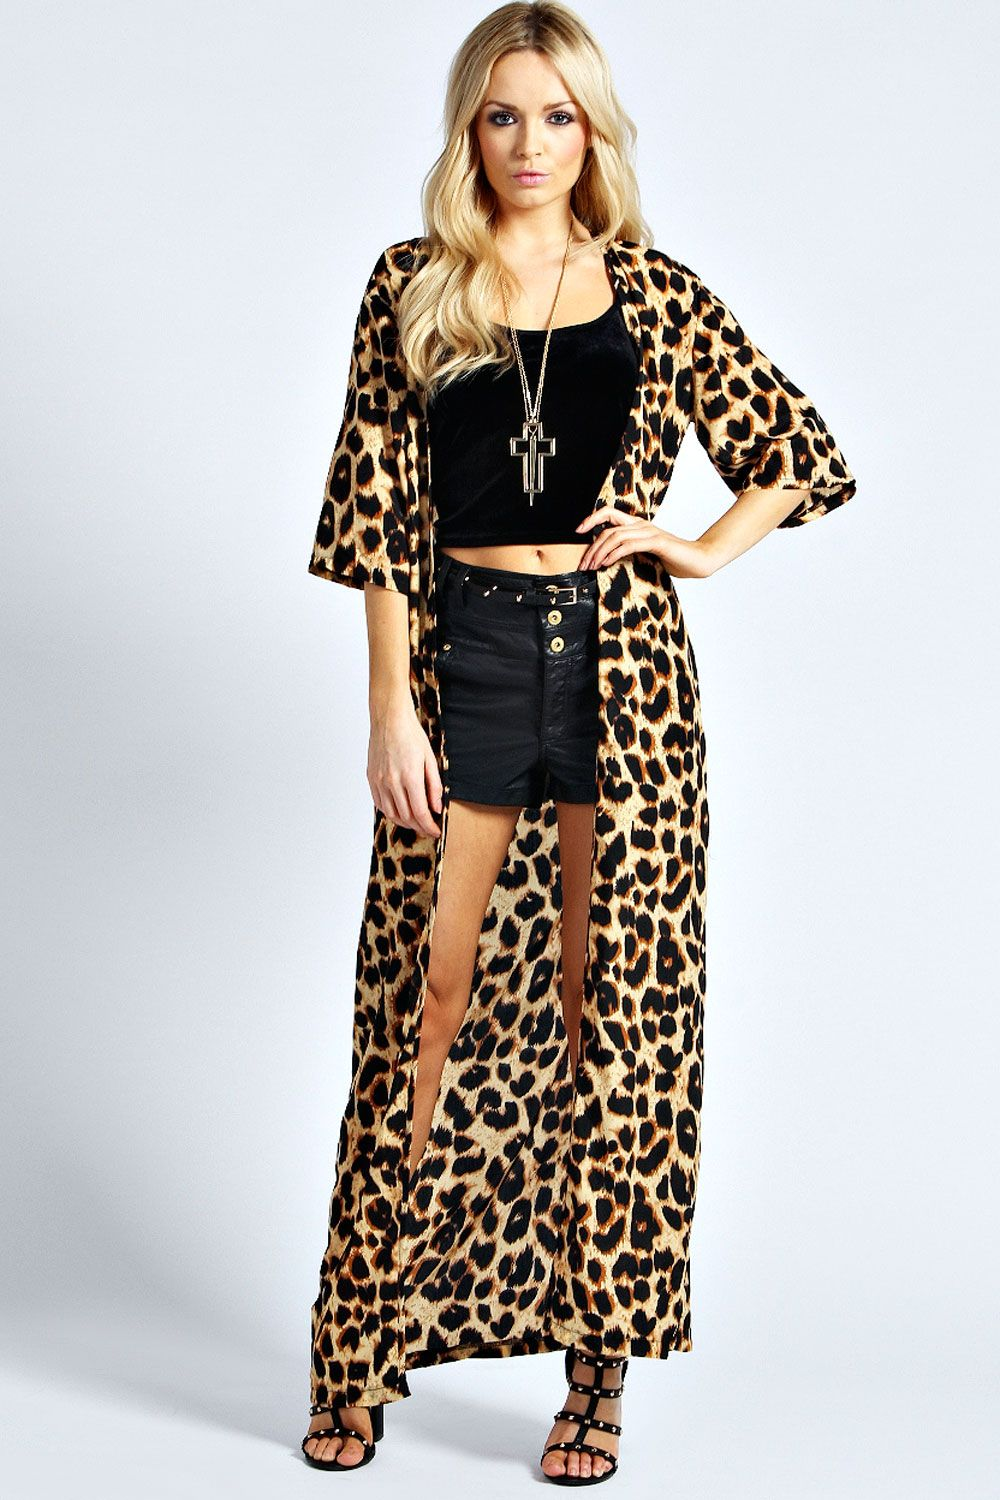 ccbbed5cfbb9 The leopard print maxi kimono only....Love it. | I want! in 2019 ...